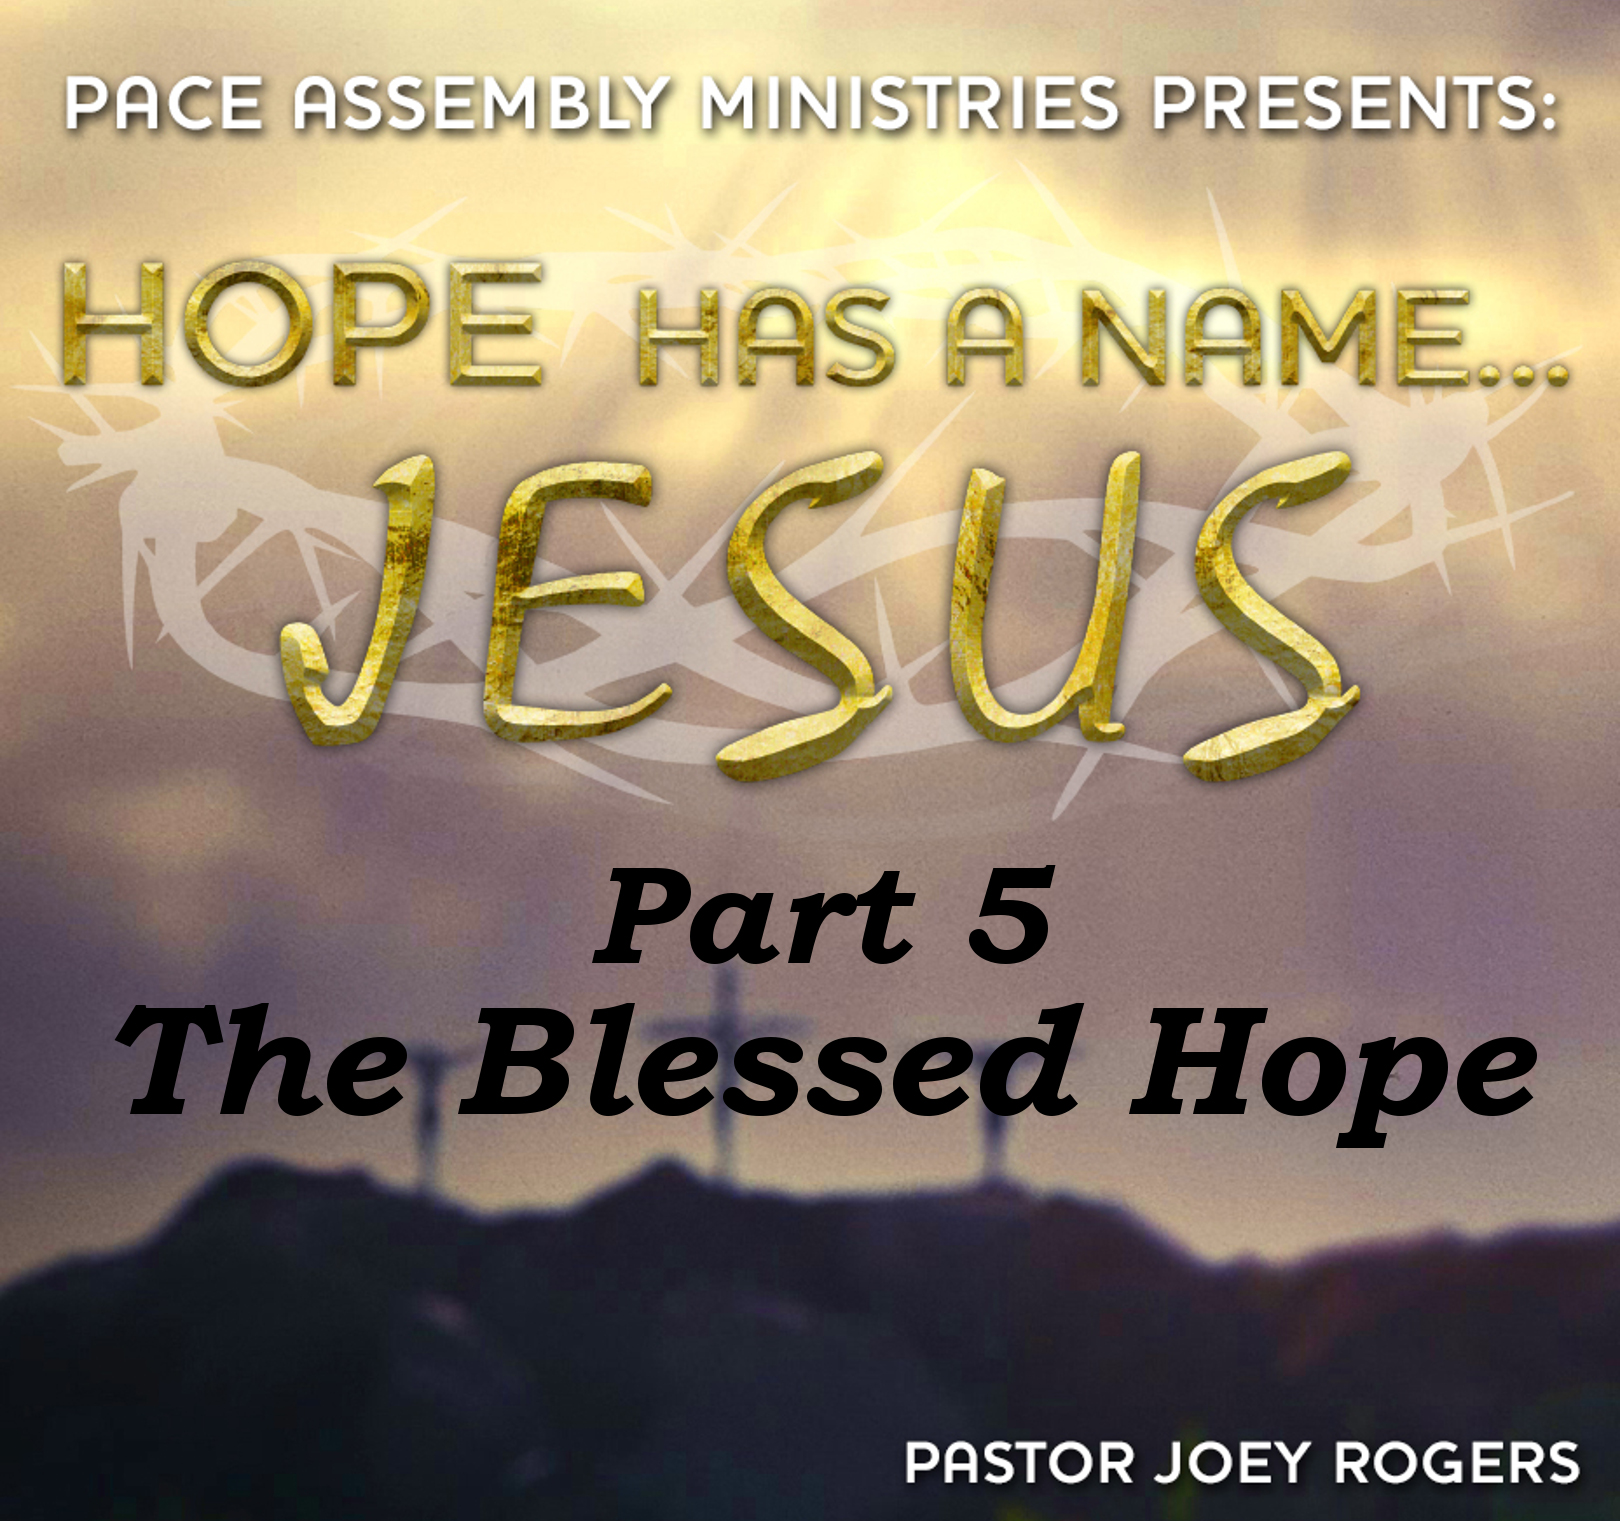 Hope Has a Name... Jesus Part 5 - The Blessed Hope